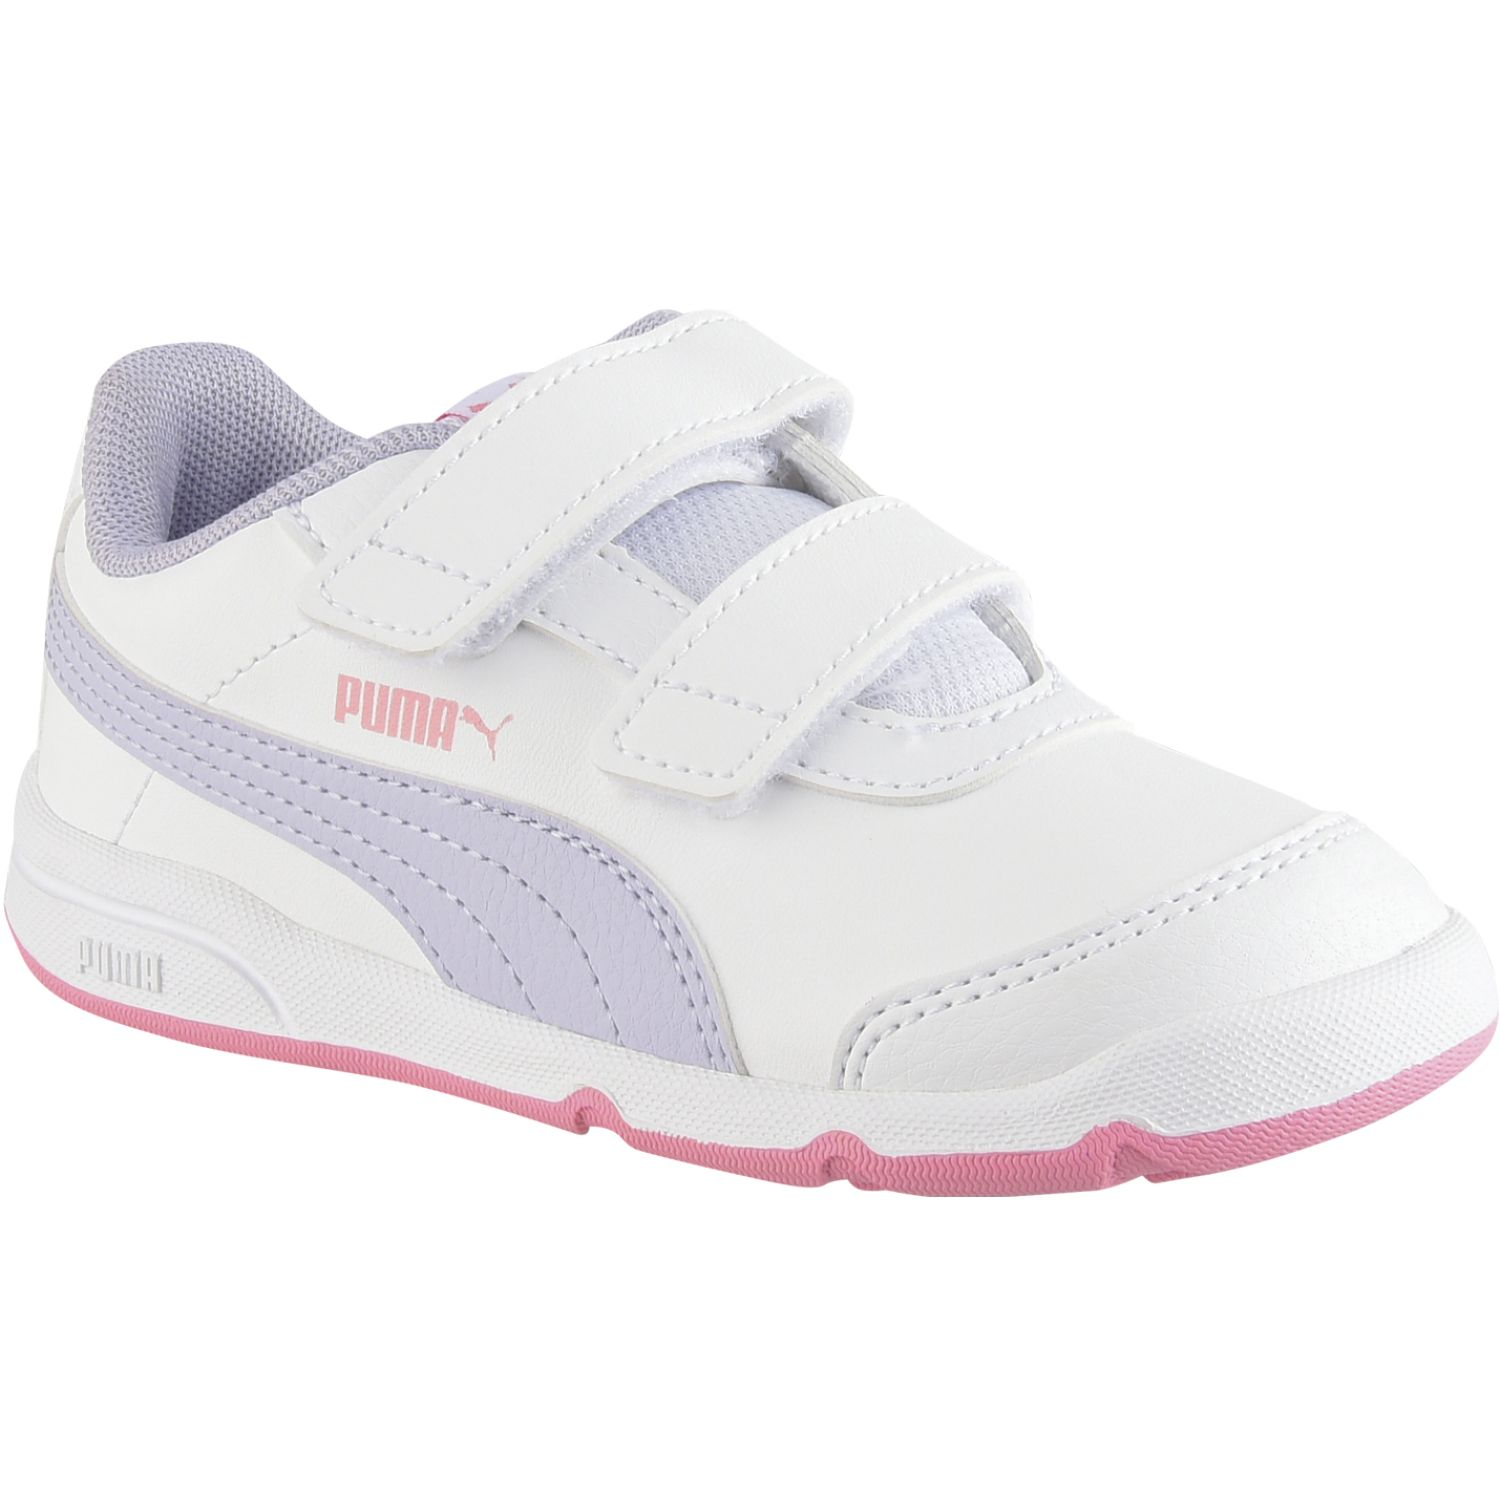 Puma stepfleex 2 sl ve v inf Blanco / rosado Walking